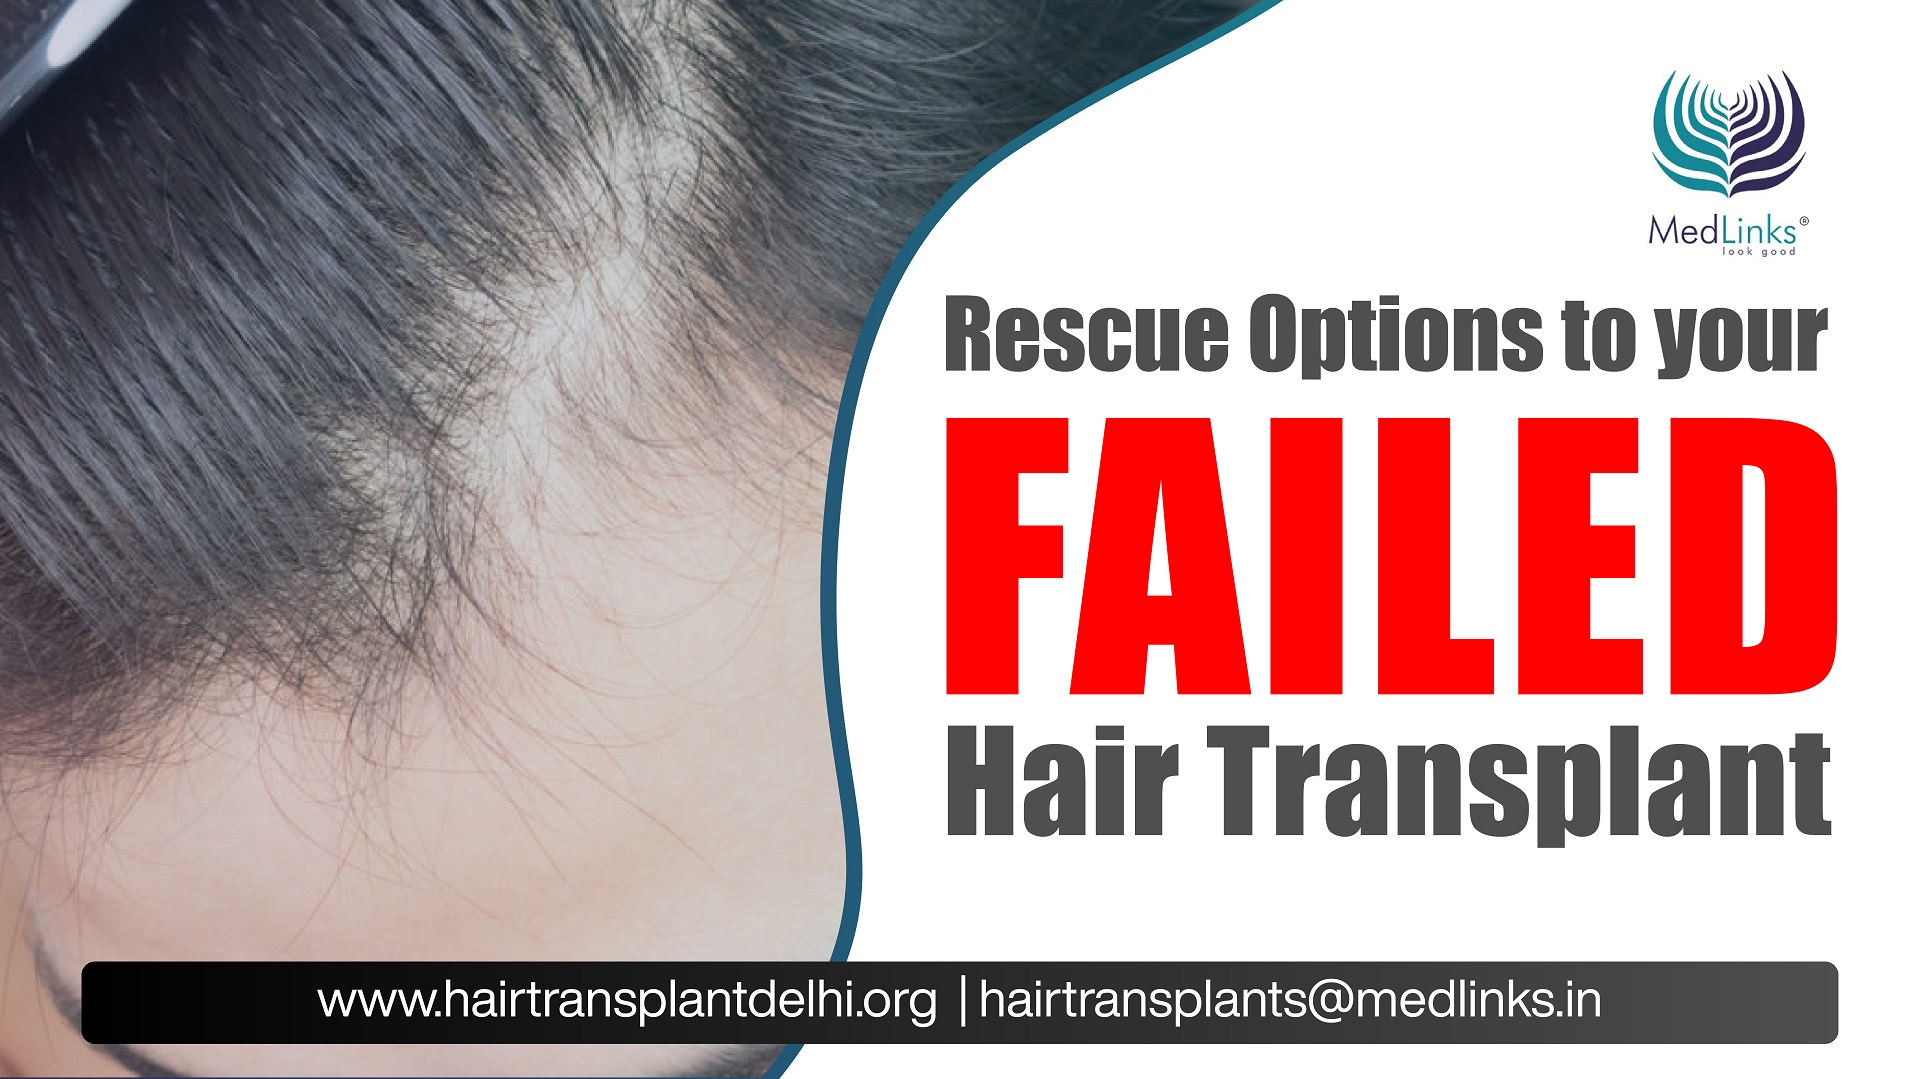 What to do after a Failed Hair Transplant?